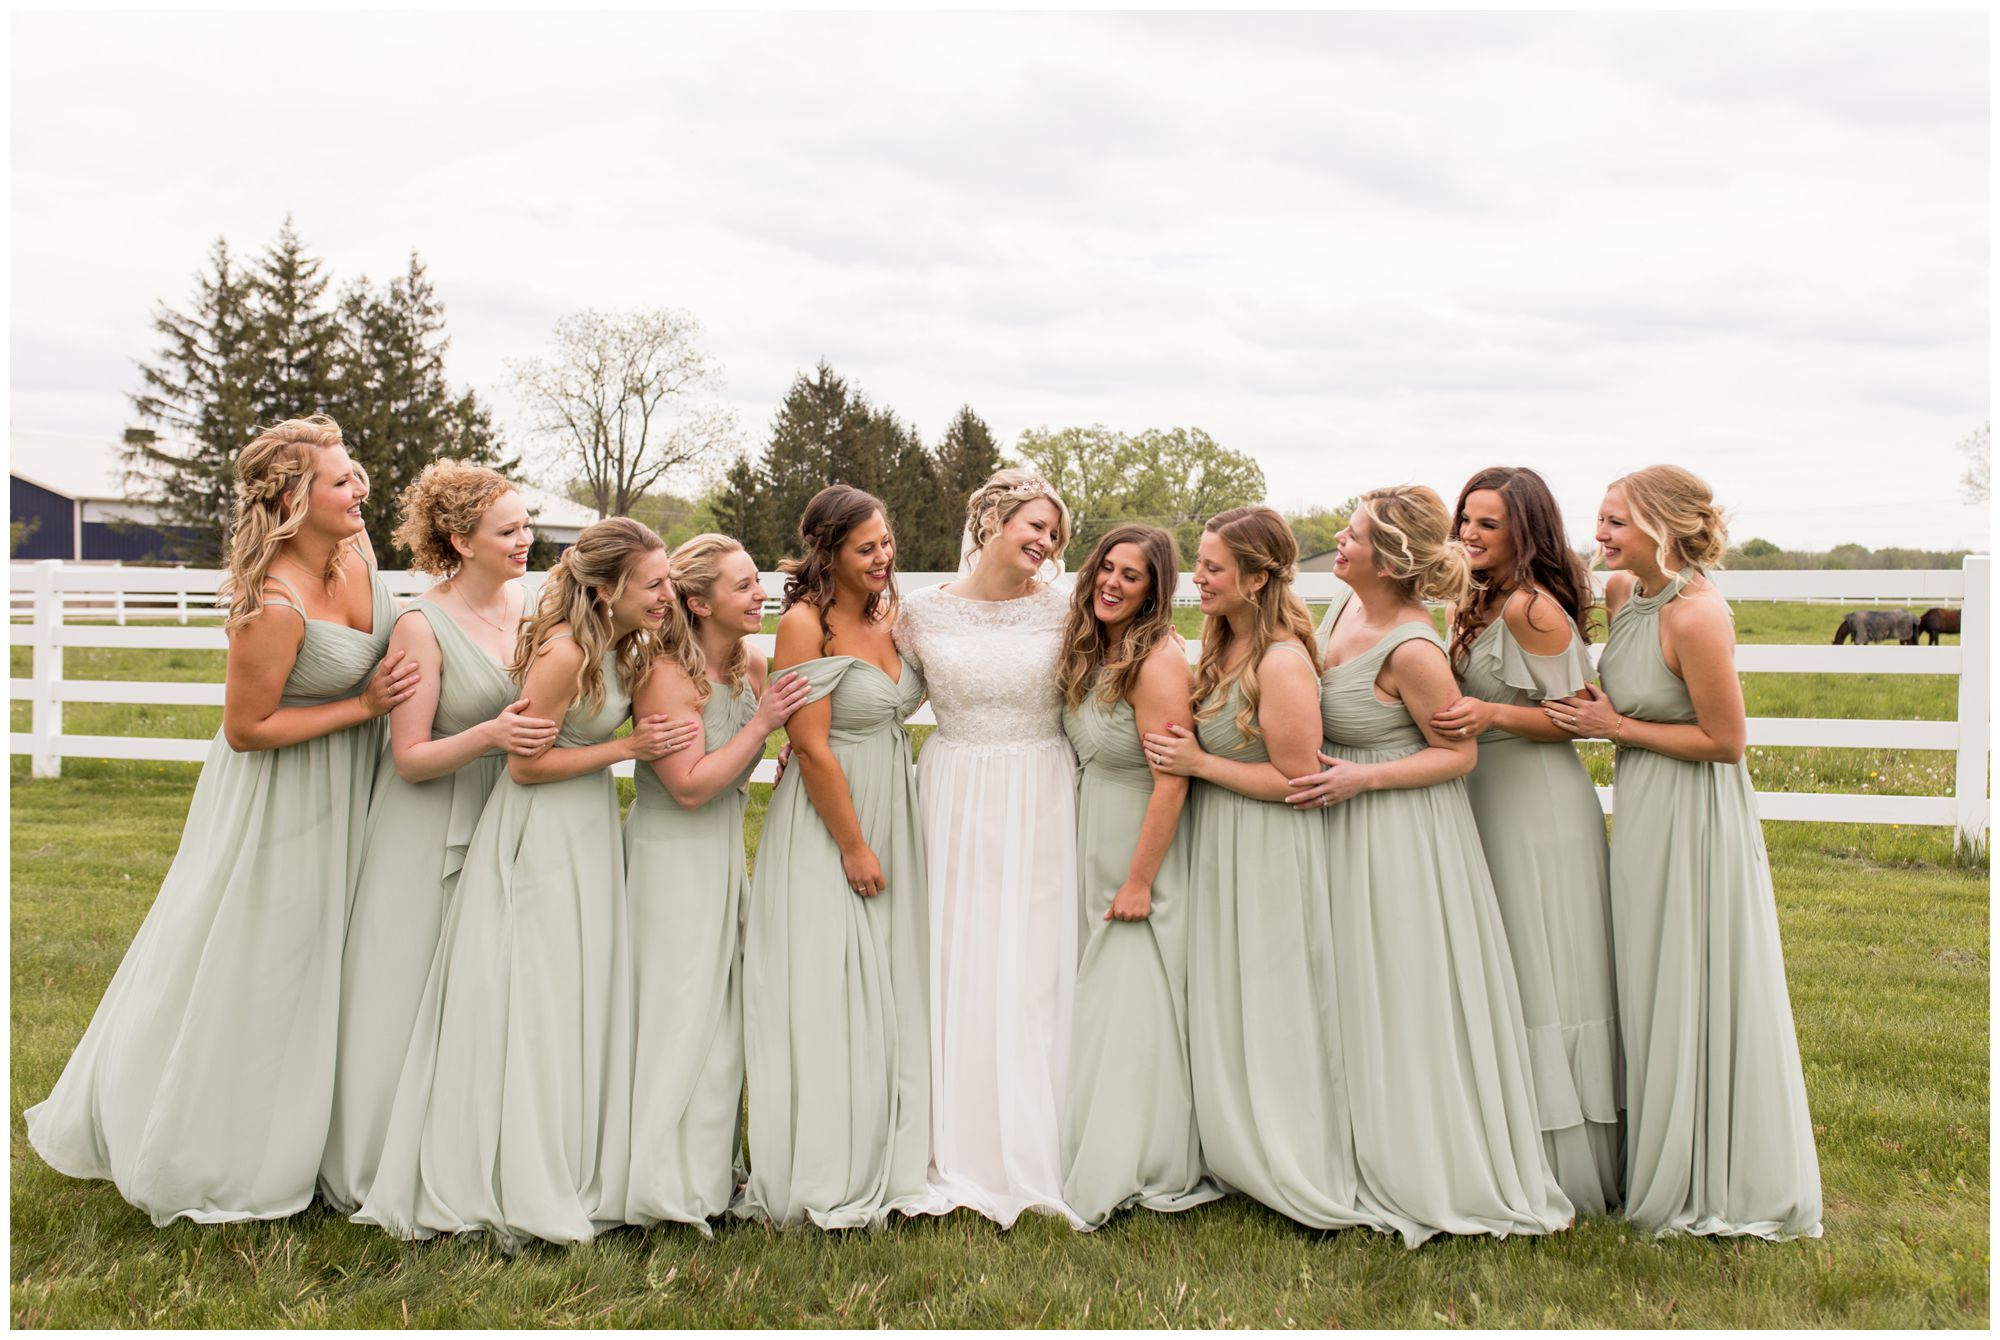 bride laughs with bridemaids before wedding ceremony at Muncie First Church of the Nazarene